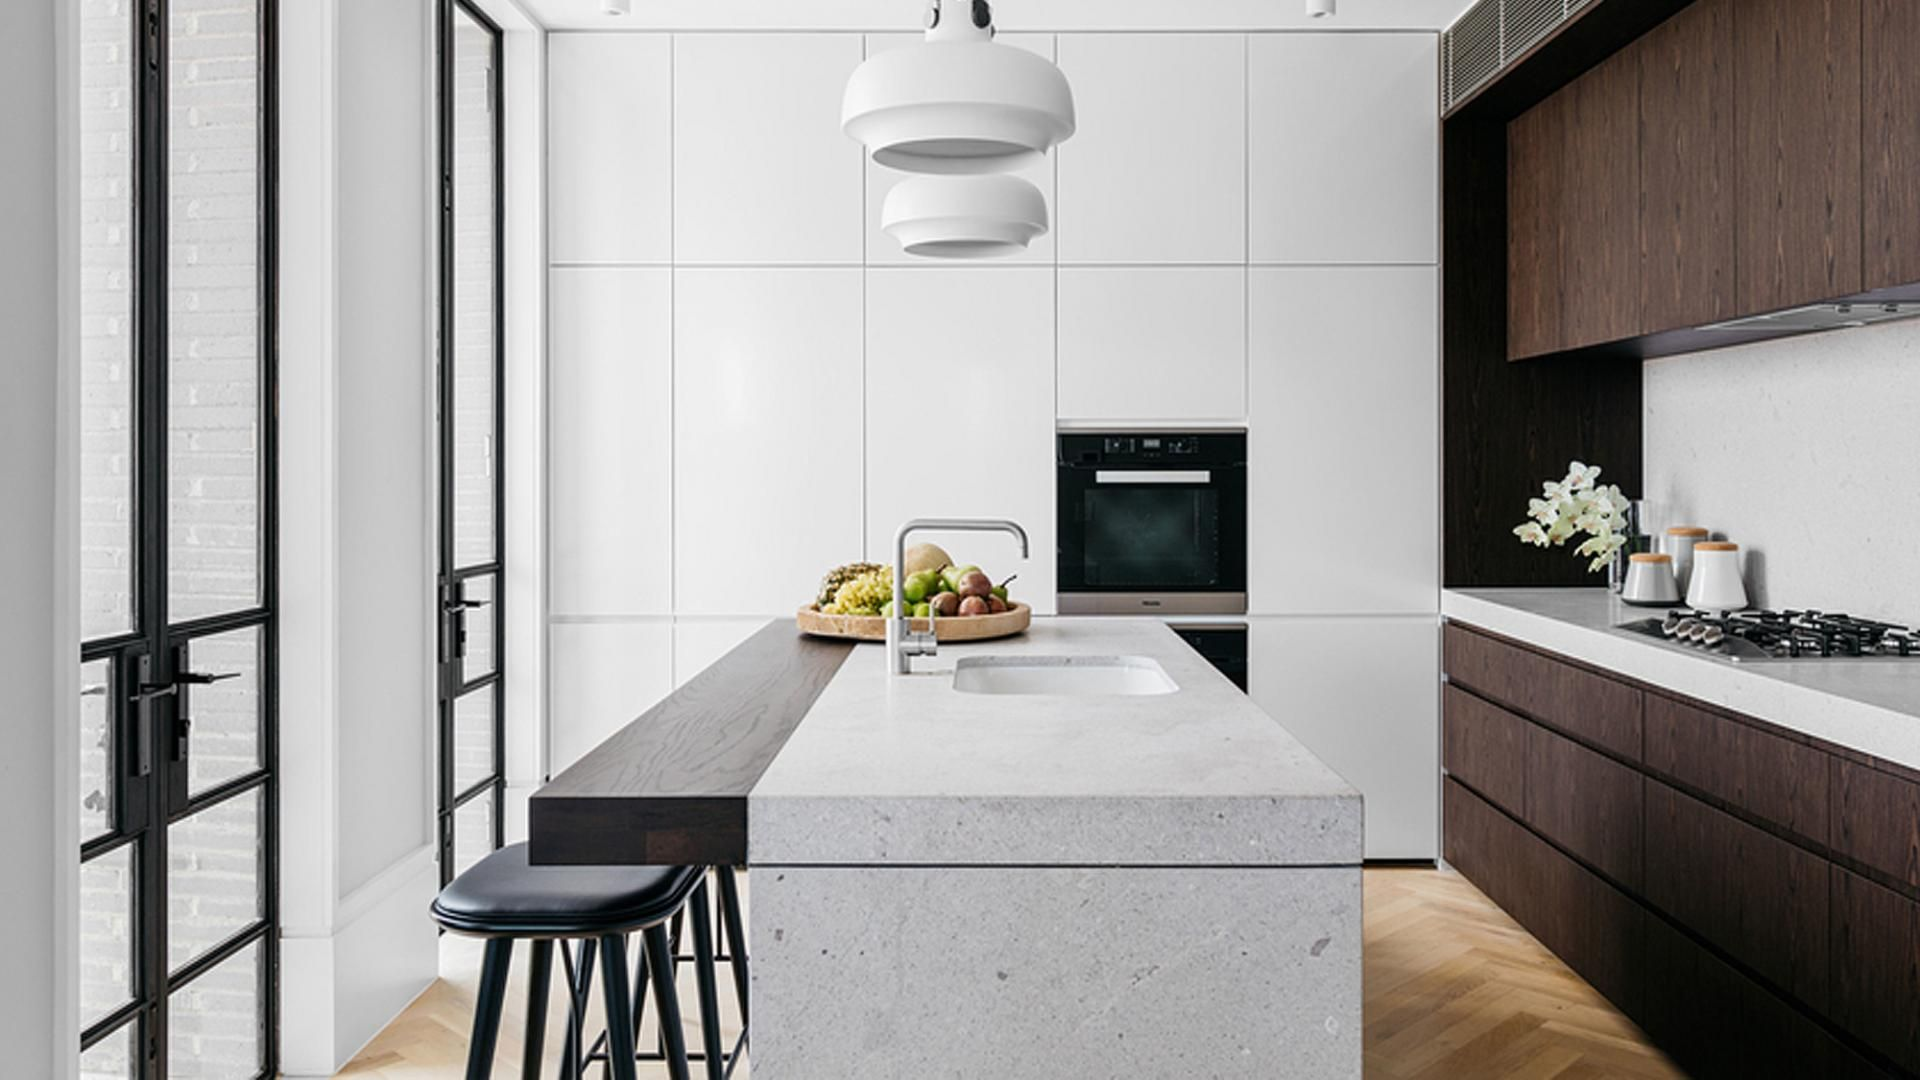 Best Kitchens From The Australian Interior Design Awards regarding ...